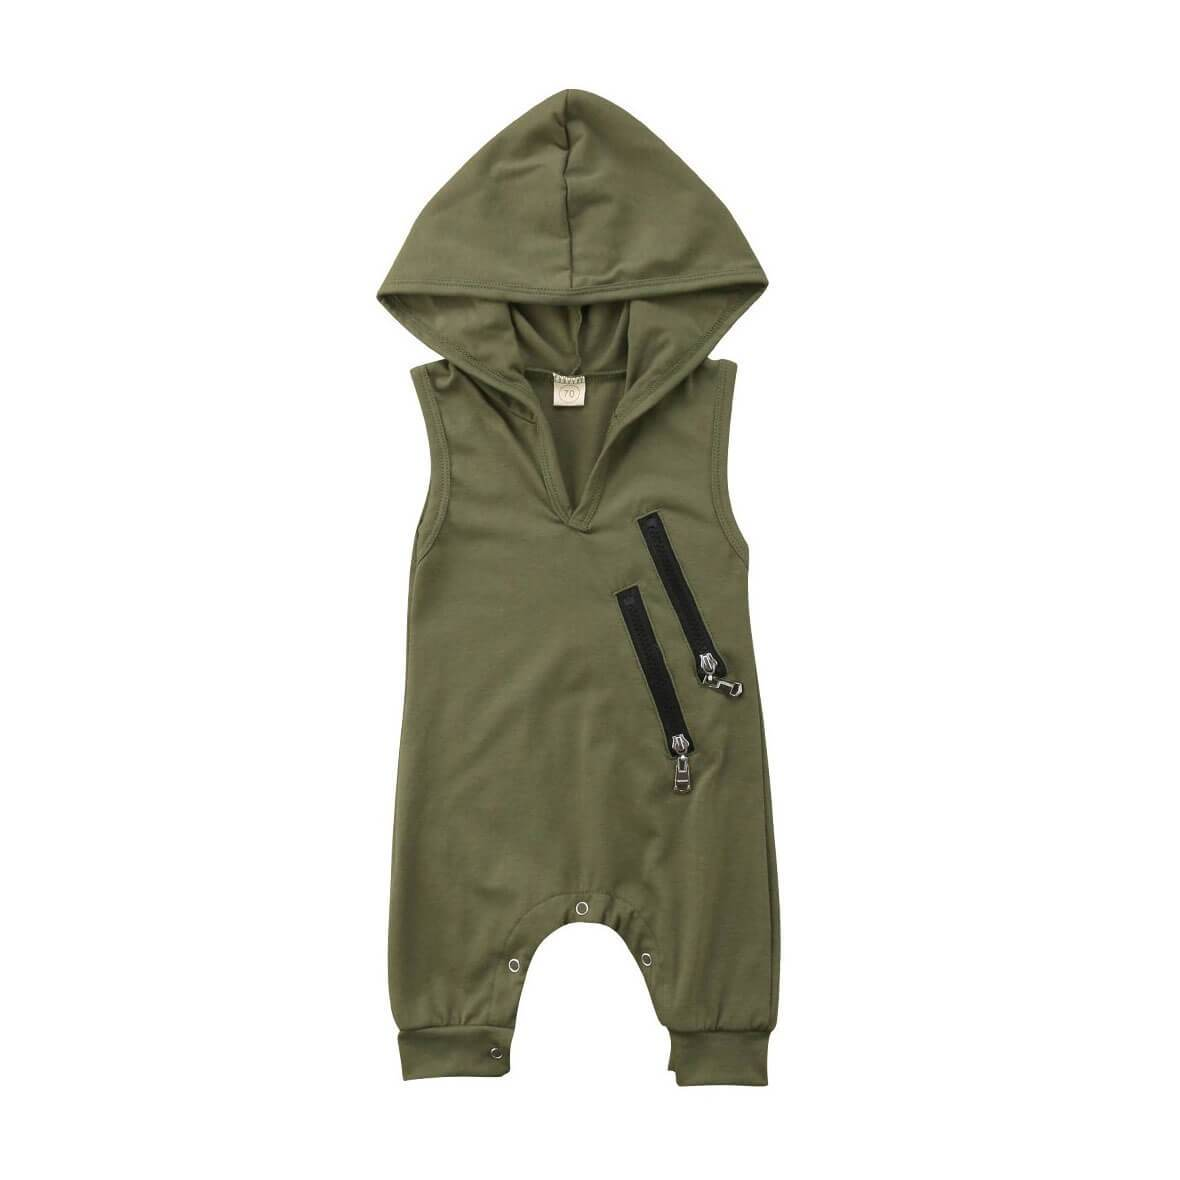 Sleeveless Khaki Hooded Jumpsuit - The Trendy Toddlers